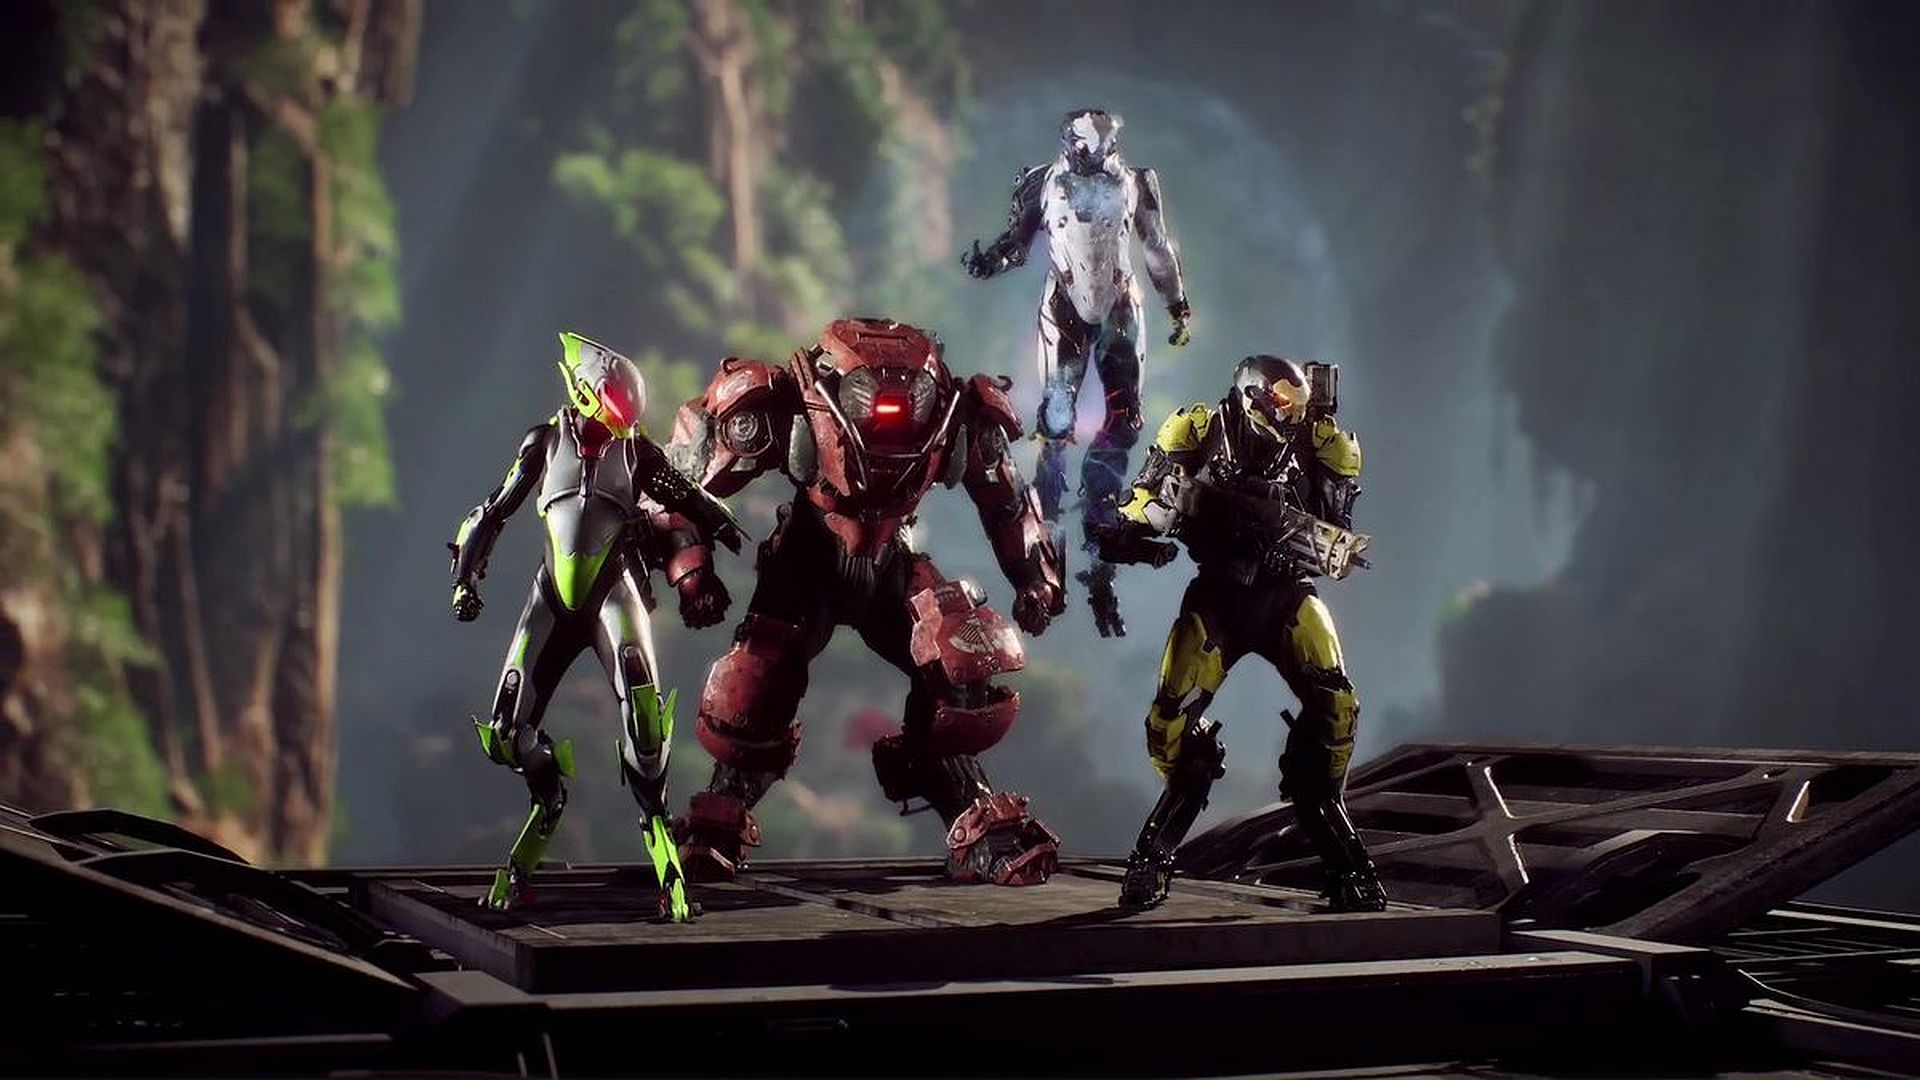 Anthem Legion of Dawn weapon disappeared